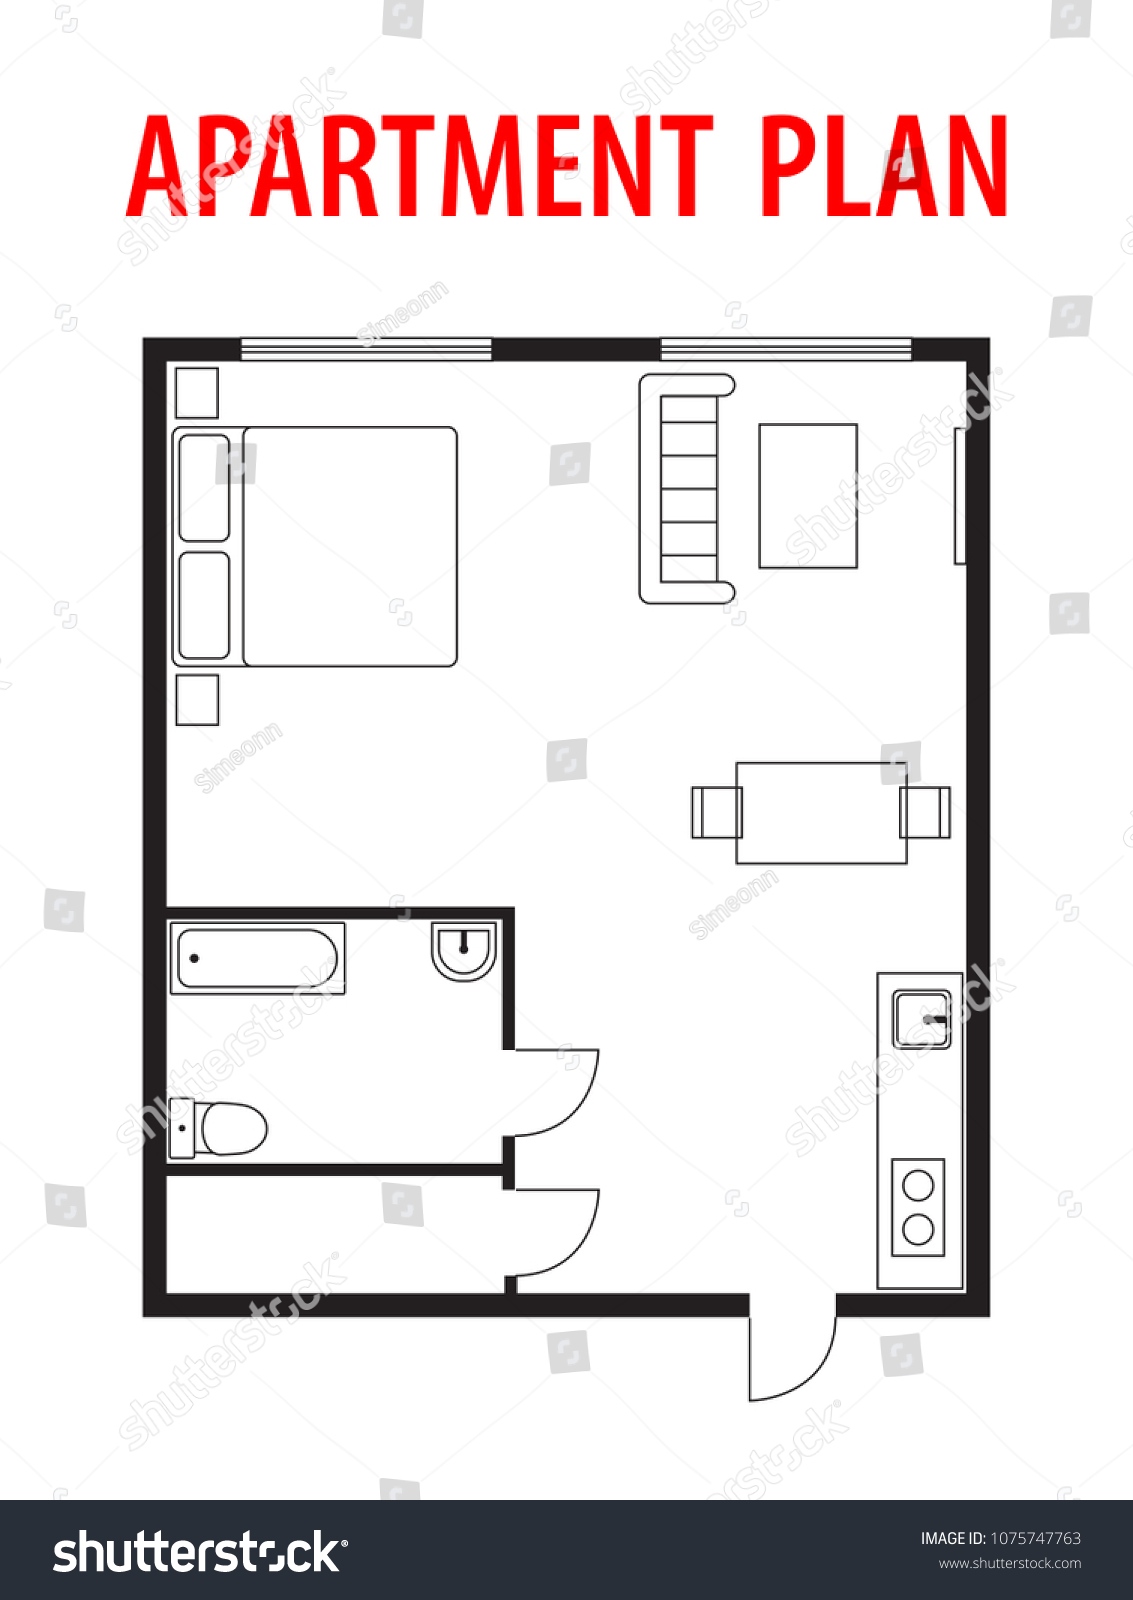 Plan Architectural Project Blueprint Apartment Studio Stock Vector Royalty Free 1075747763